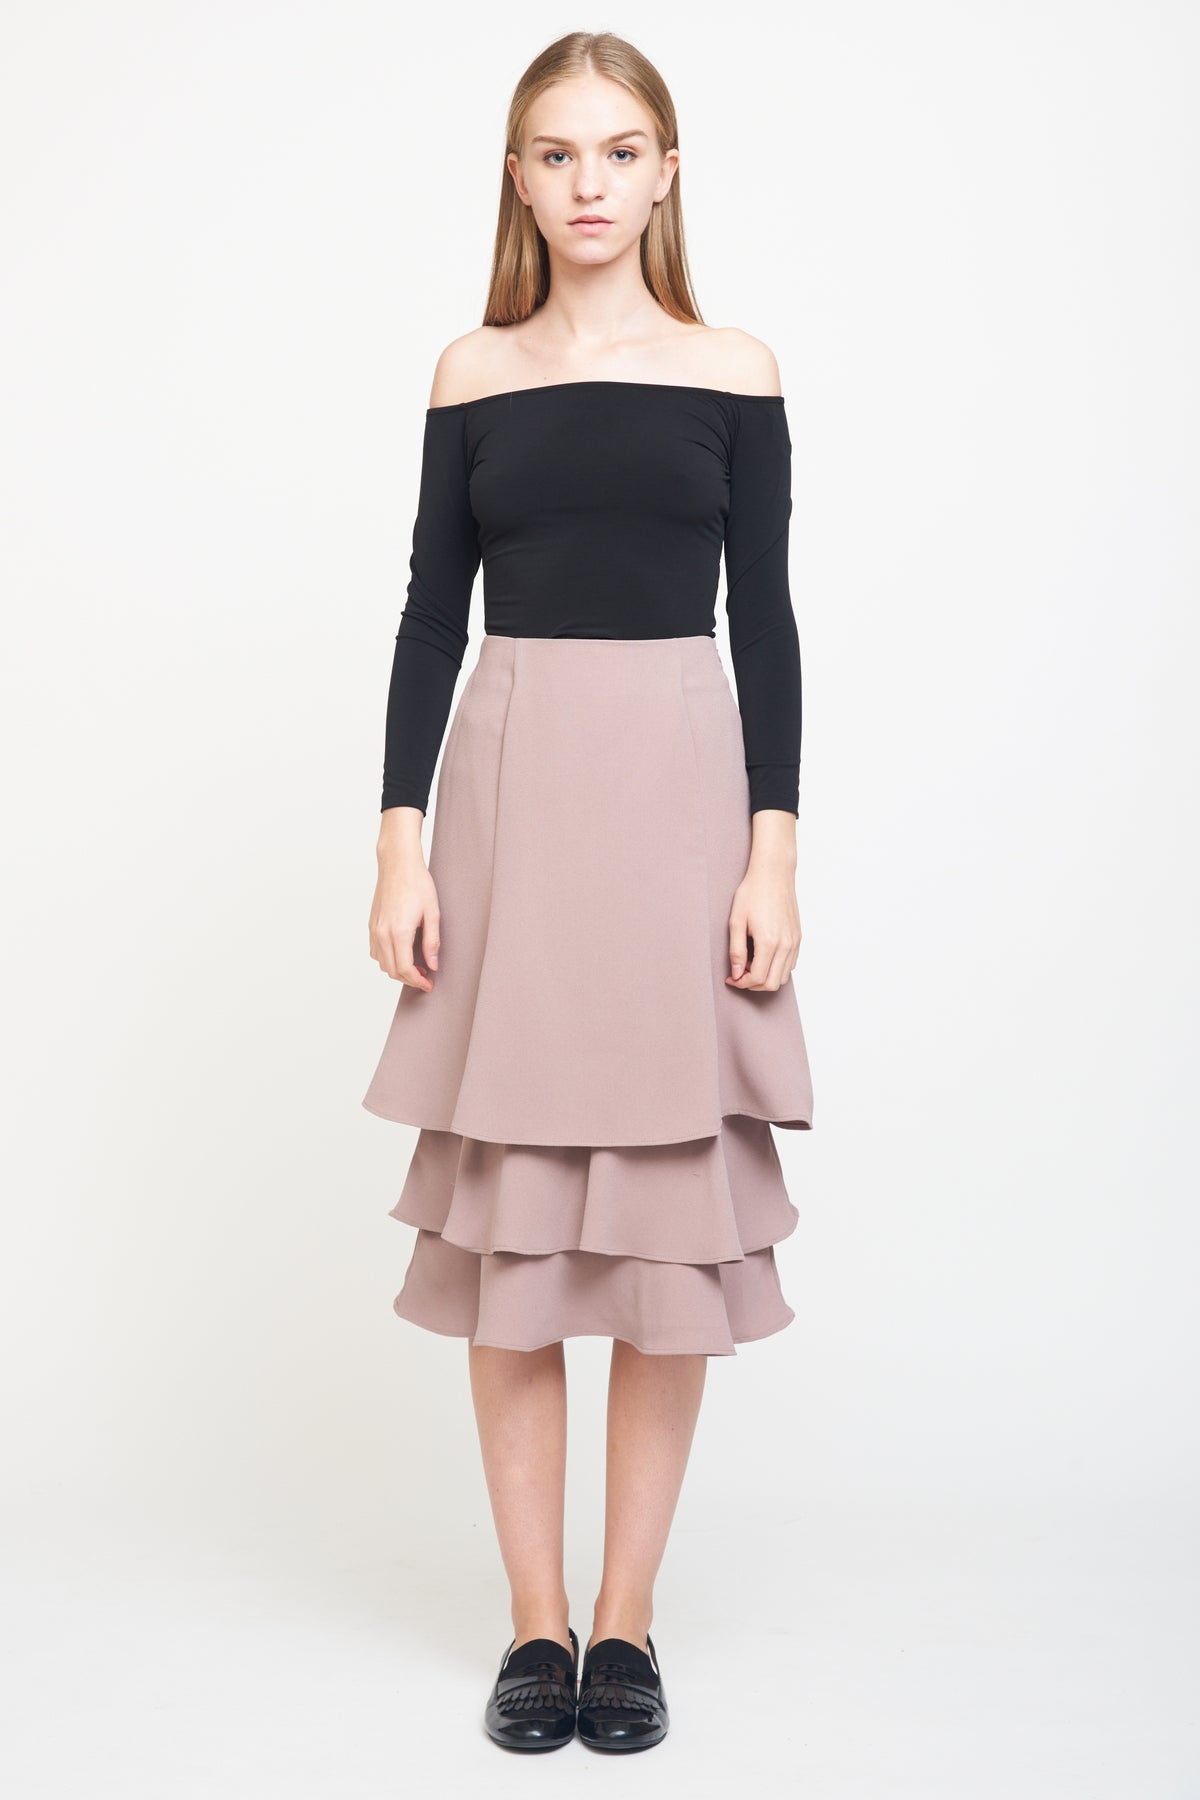 Layered Midi Skirt In Dusty Pink